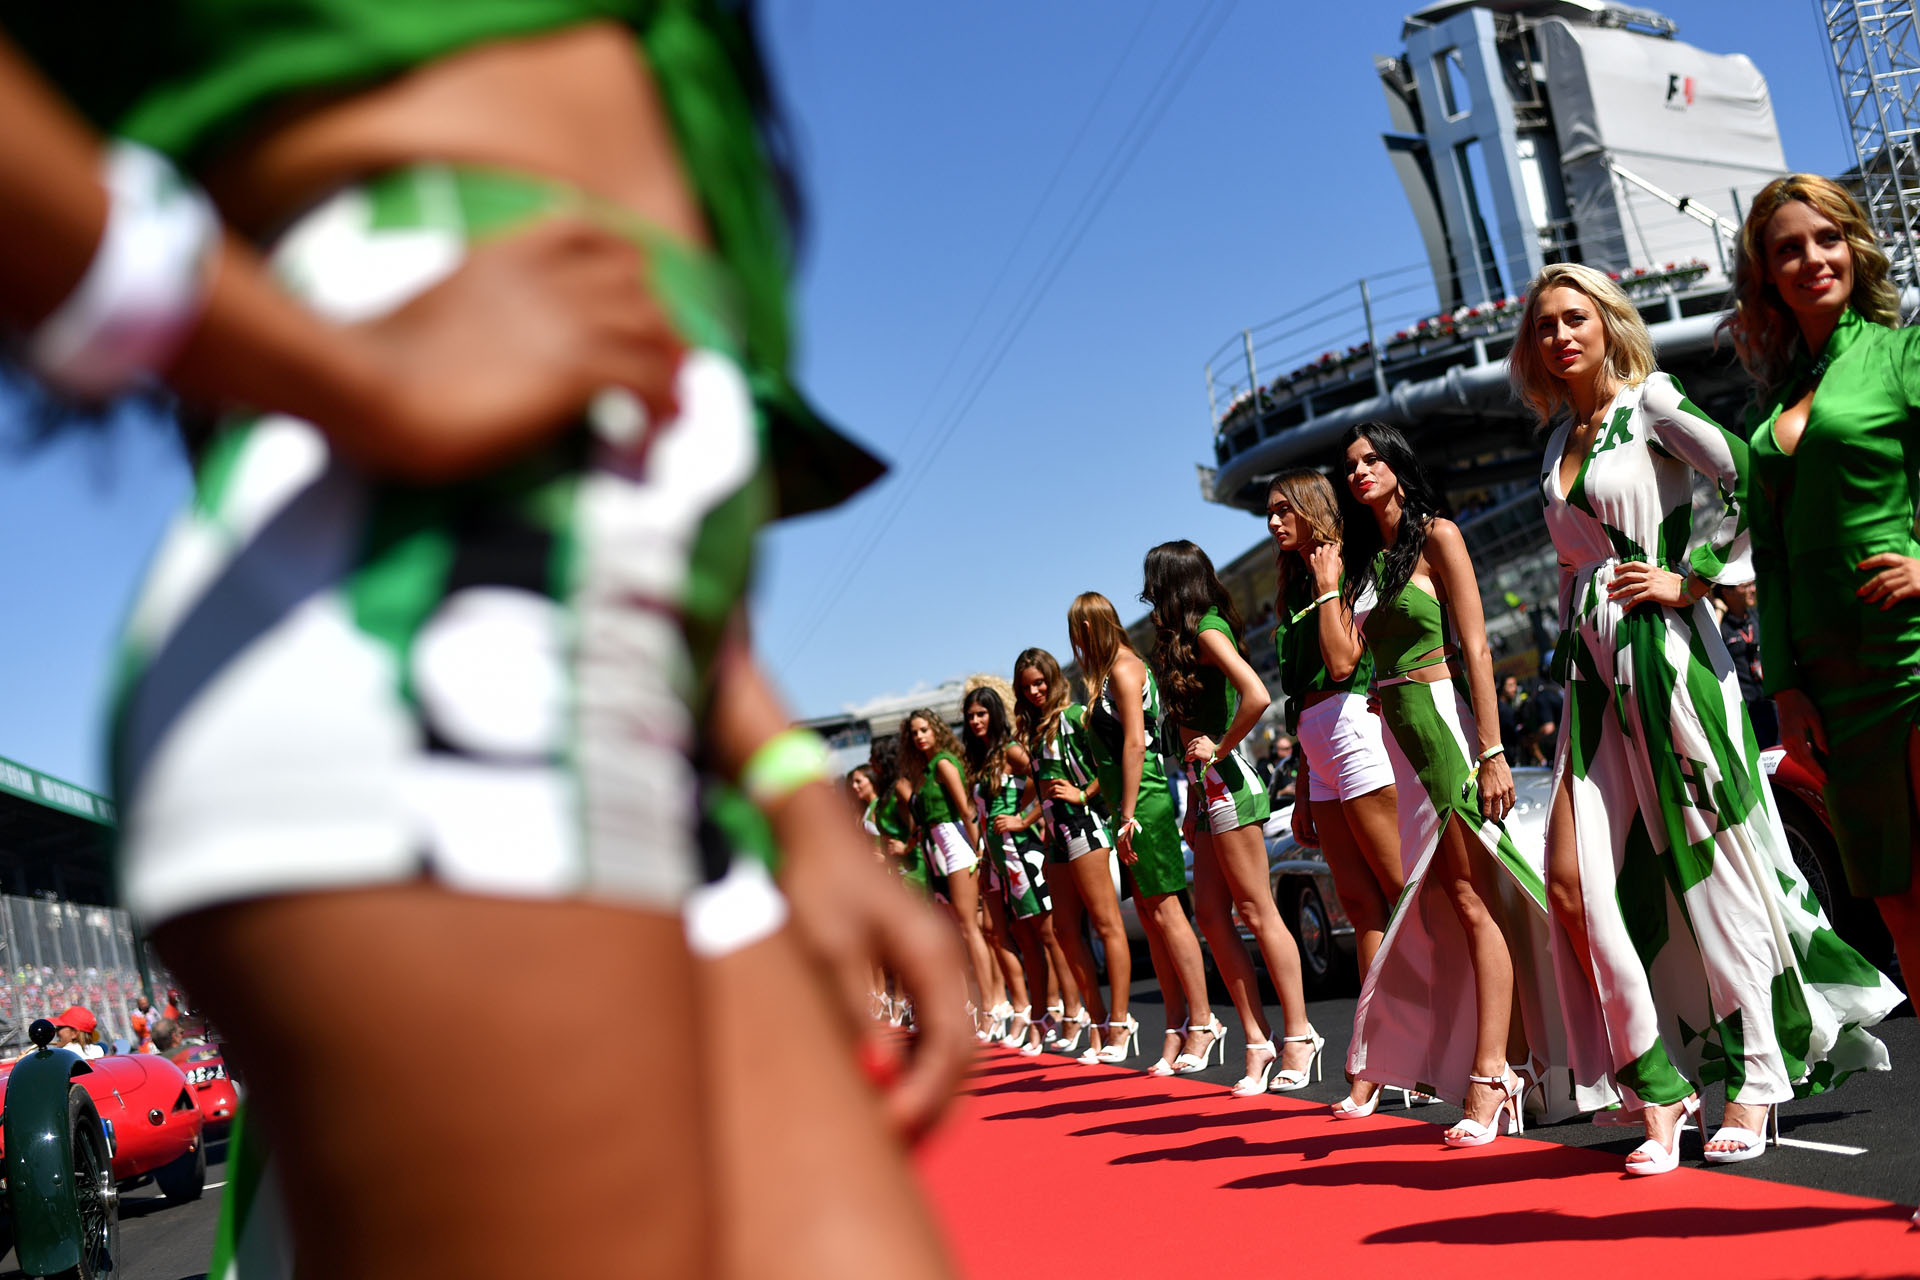 Grid girls line up for the pit lane walk ahead of the Italian Formula One Grand Prix at the Autodromo Nazionale circuit in Monza on September 3, 2017. / AFP PHOTO / ANDREJ ISAKOVIC